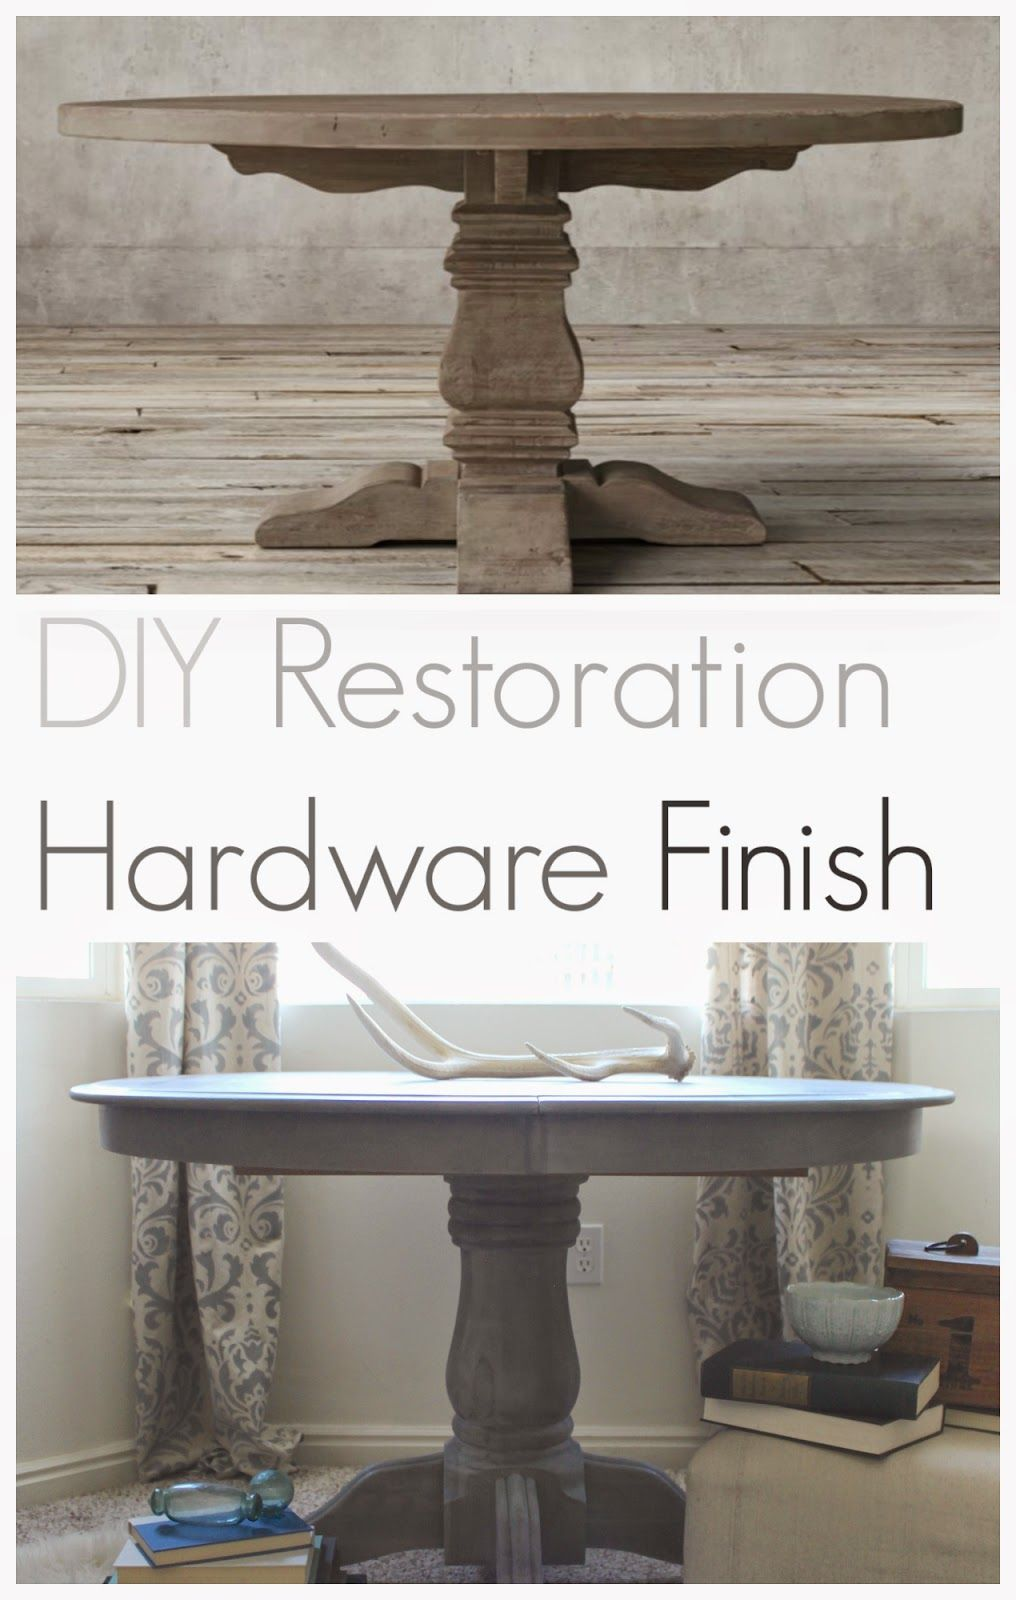 Diy Restoration Hardware Finish With Weatherwood Stains